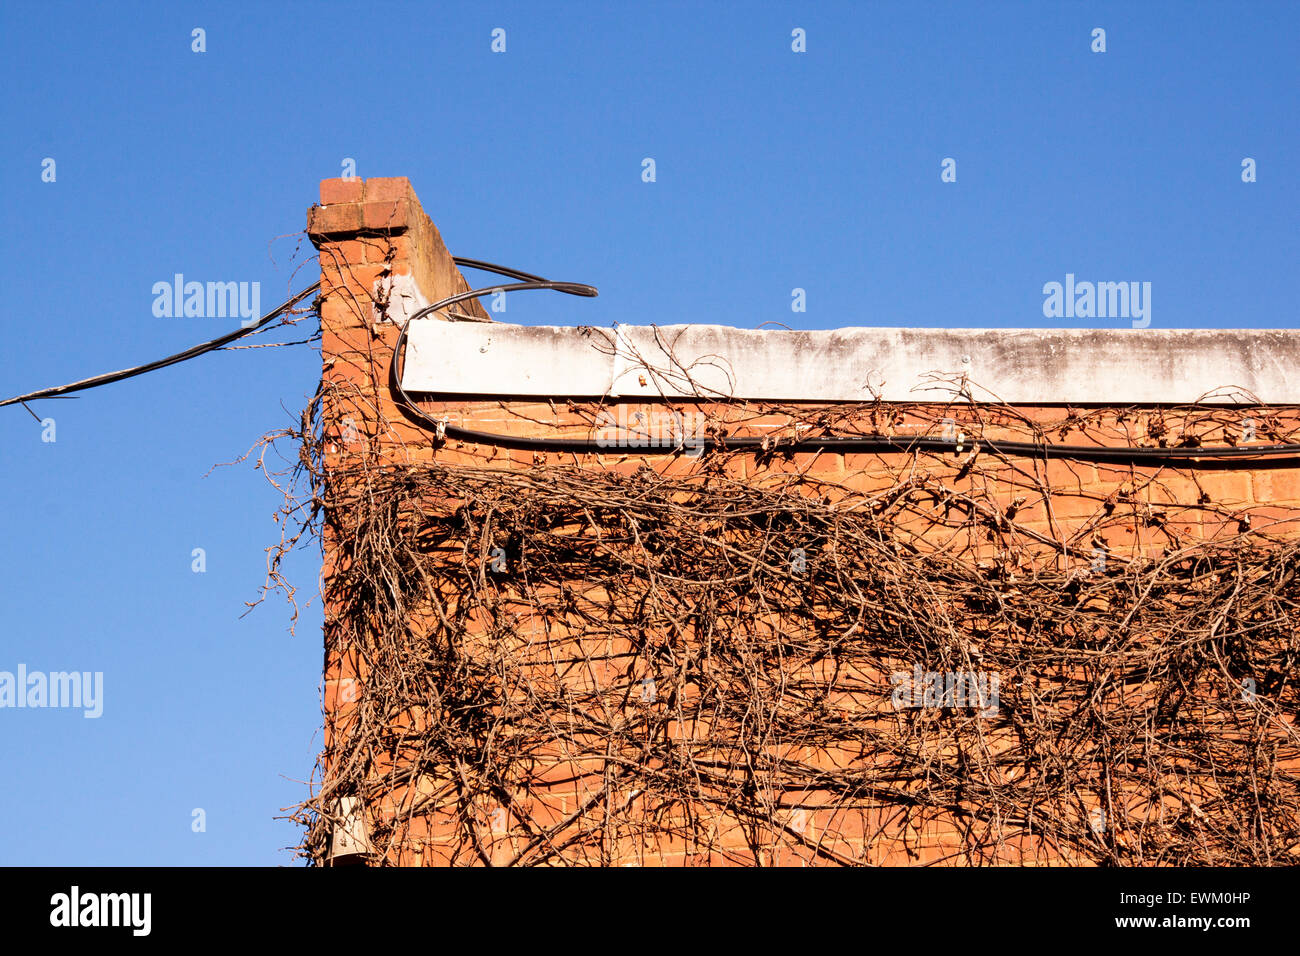 cable and dry creeper on side of red brick building - Stock Image